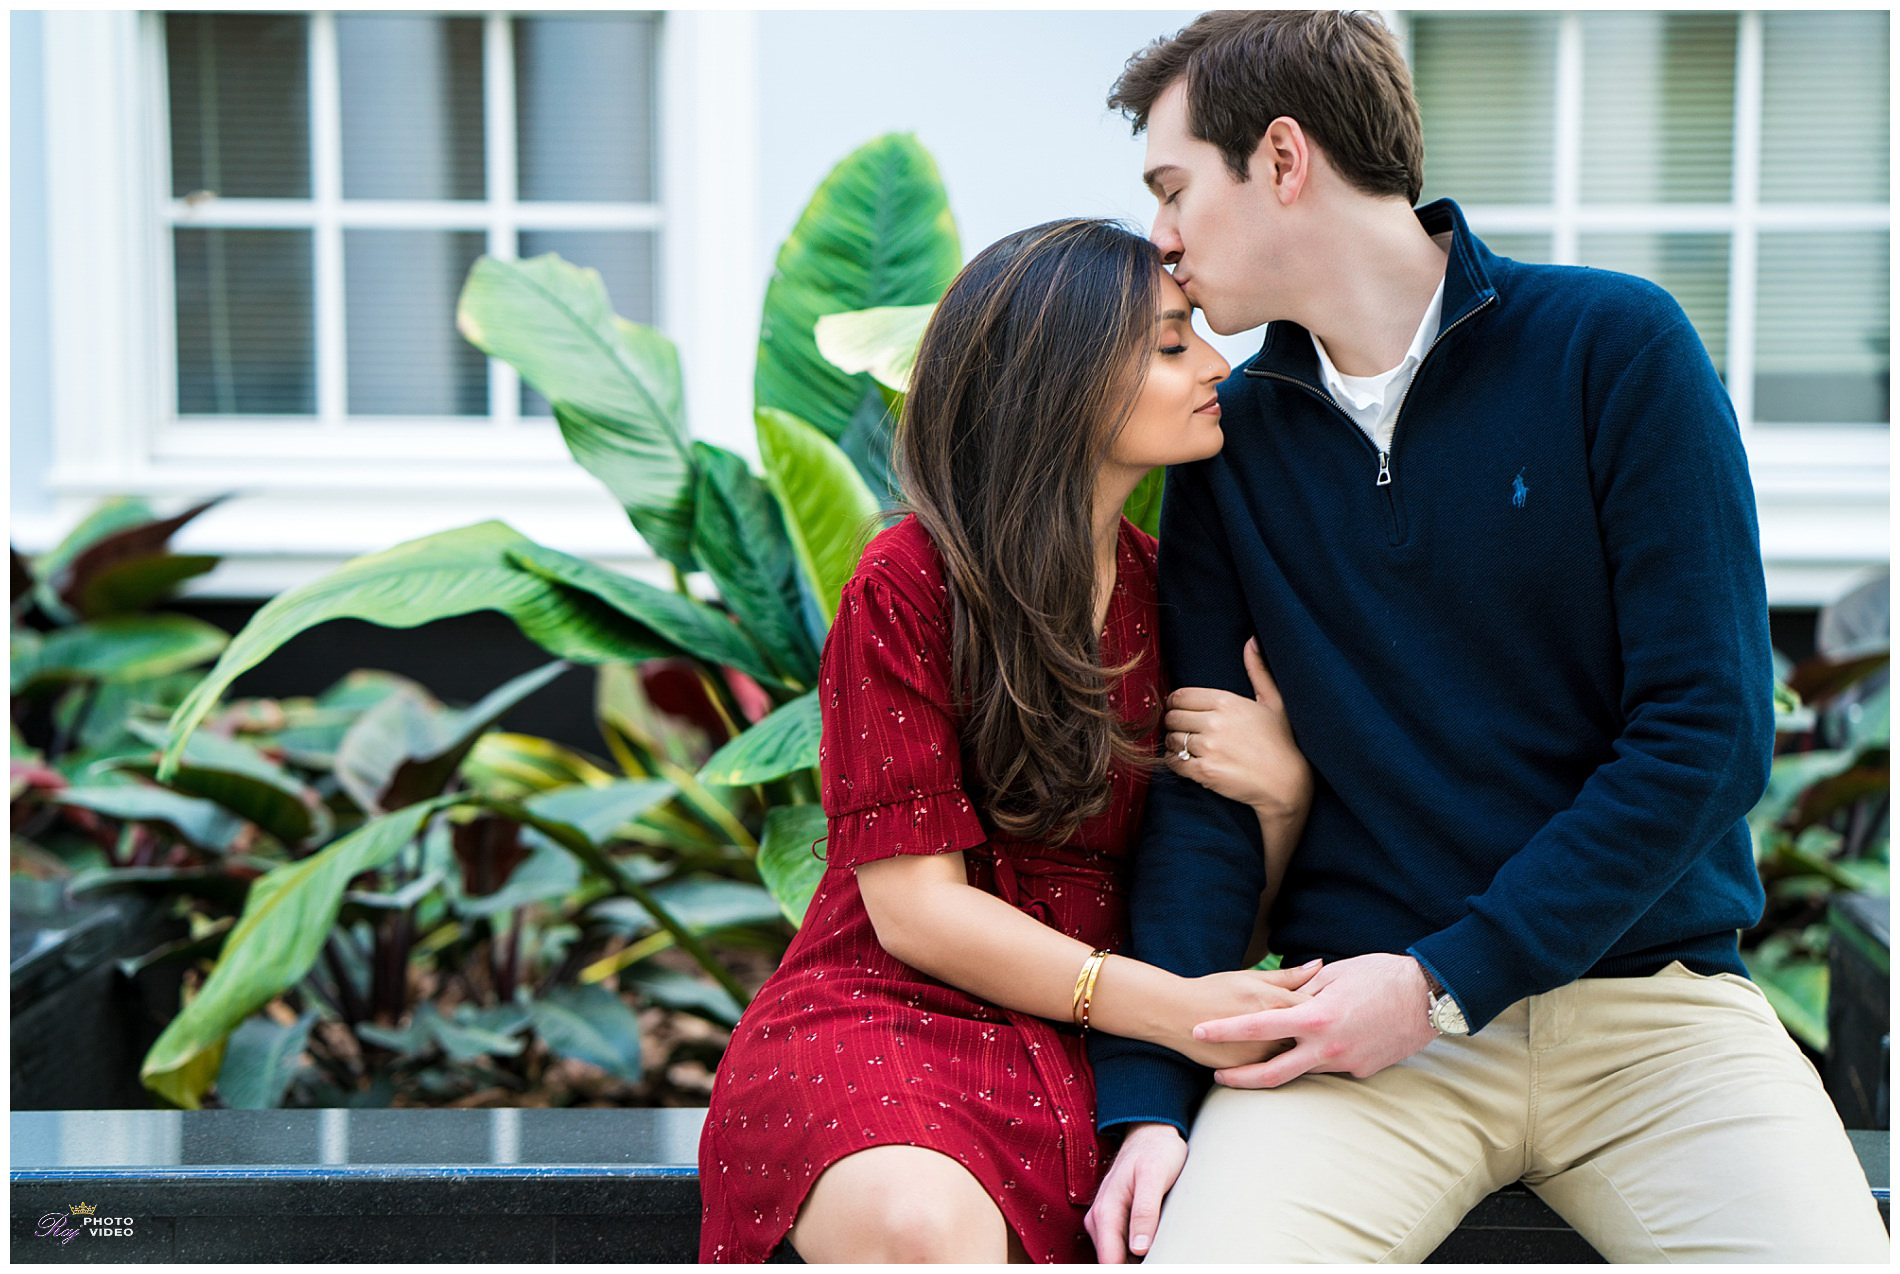 The-College-of-New-Jersey-Engagement-Shoot-Prerna-Kevin13.jpg